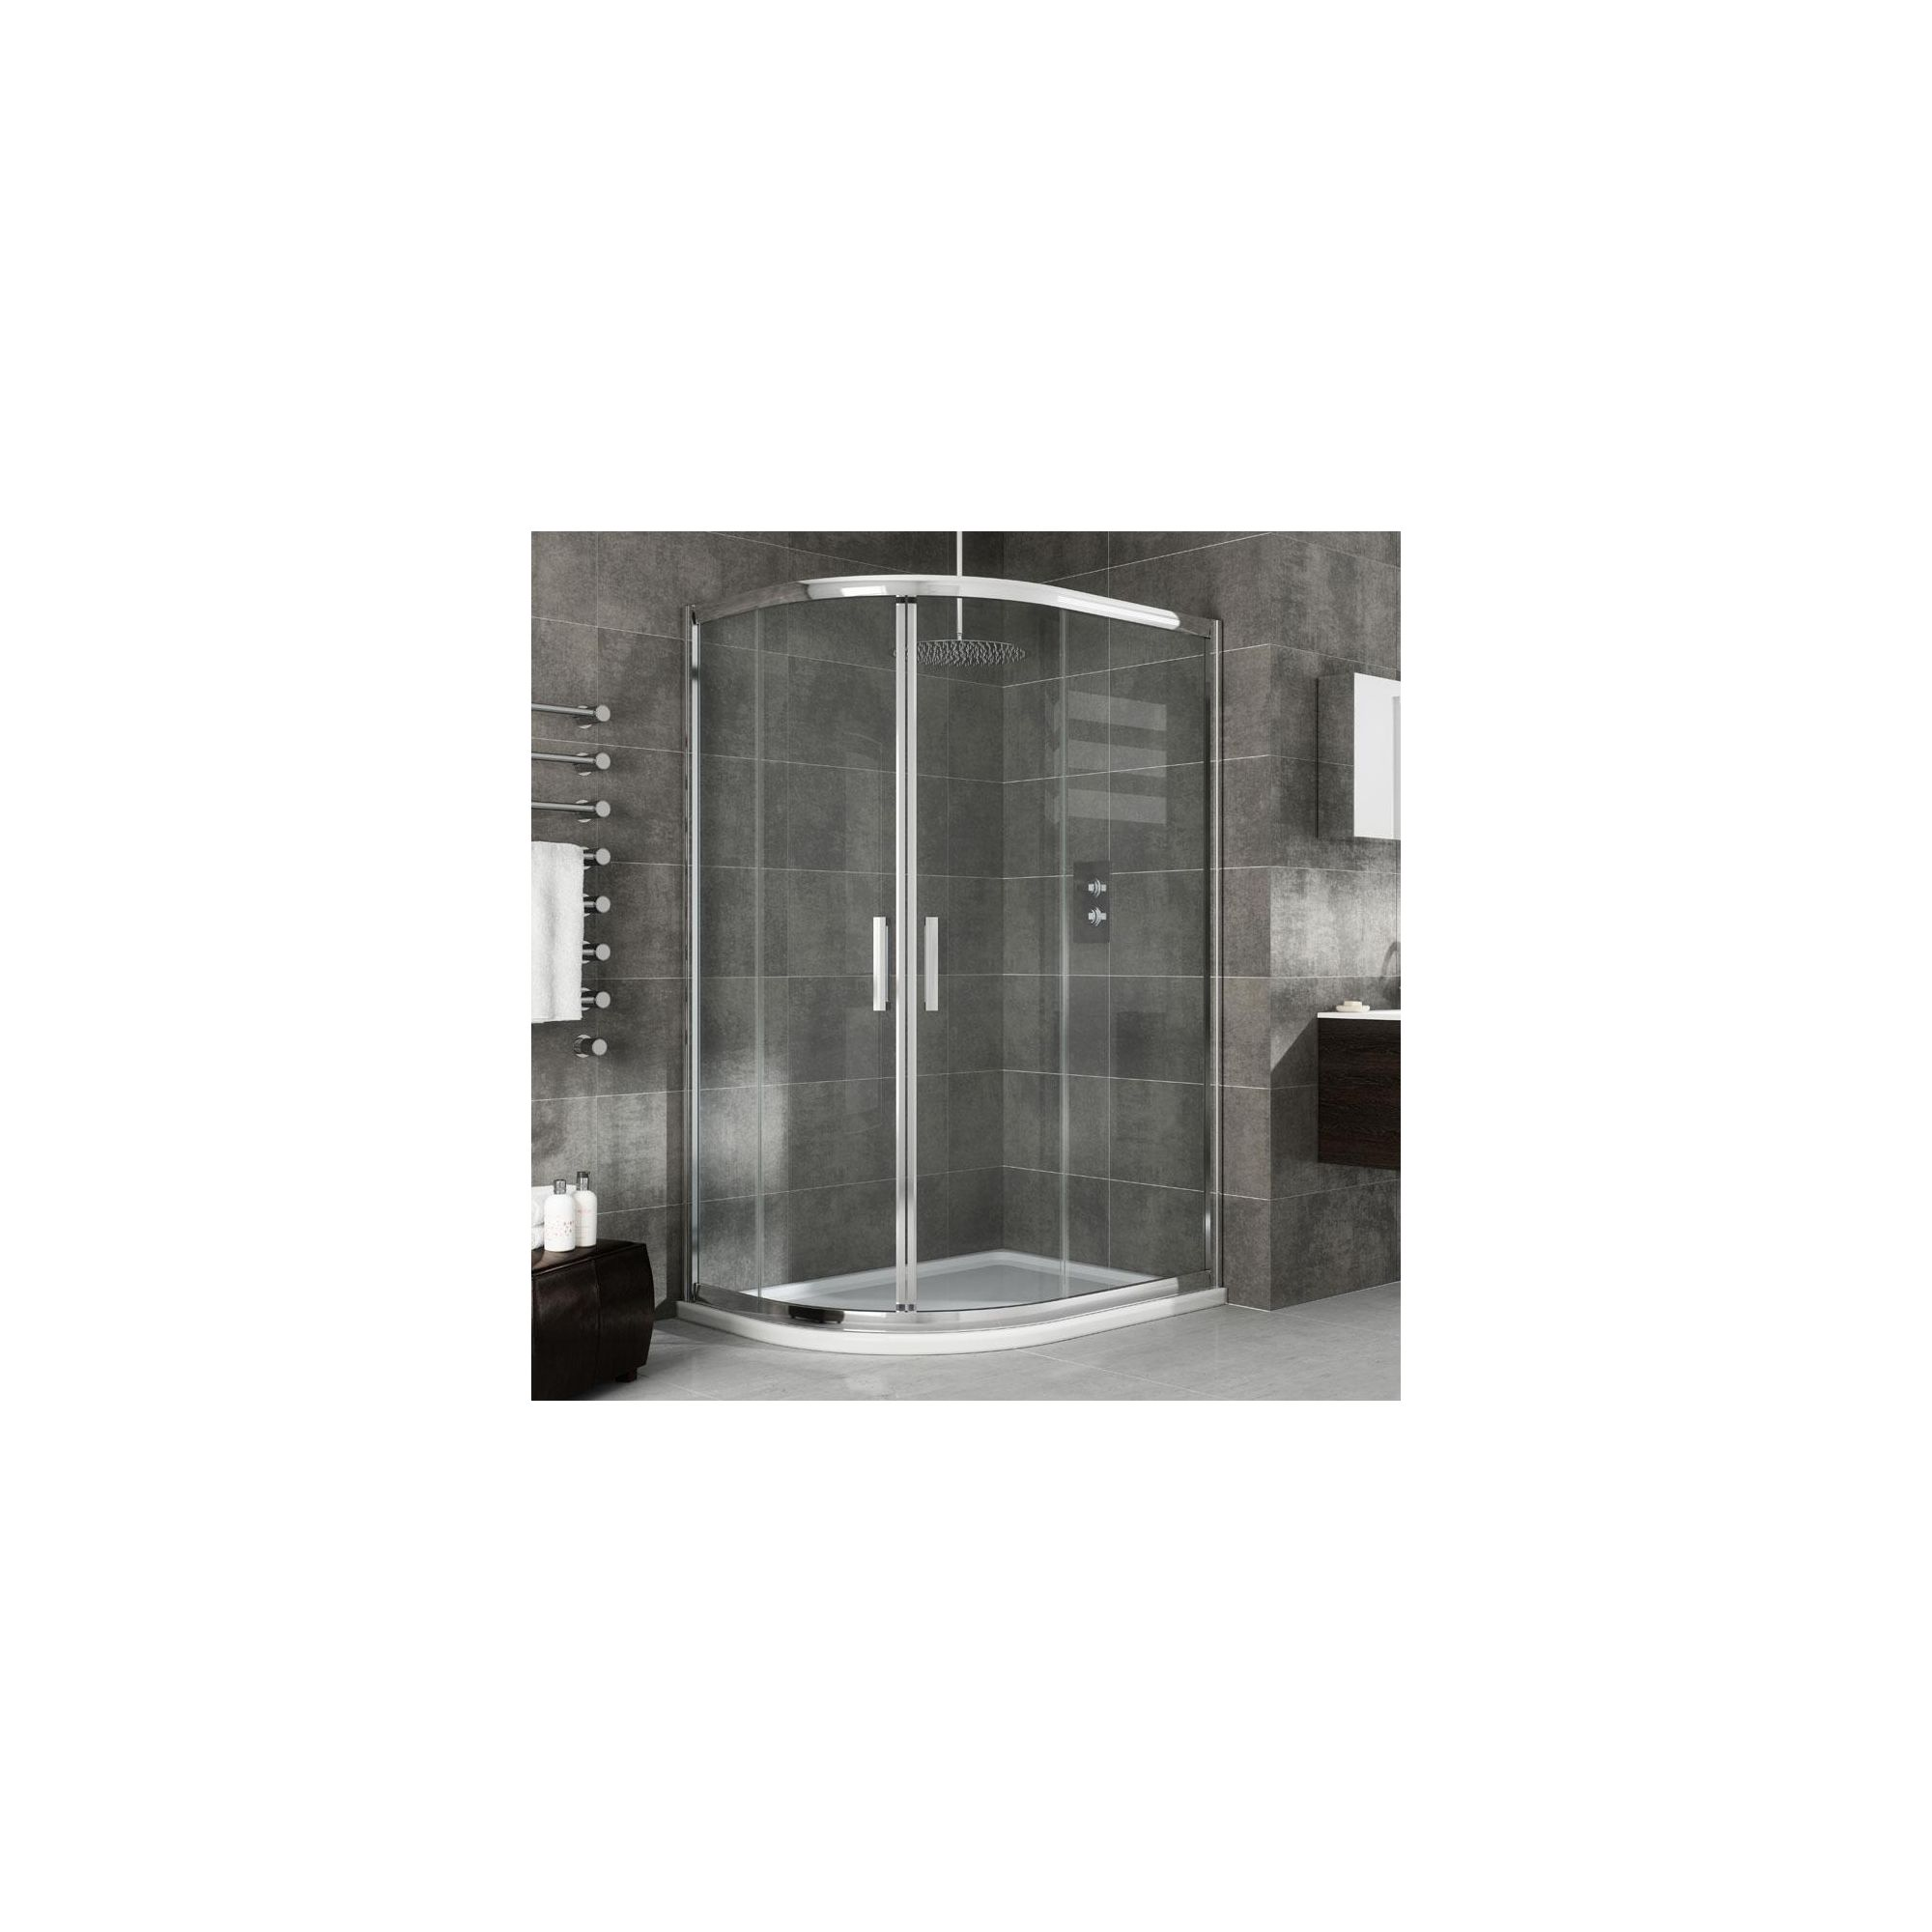 Elemis Eternity Offset Quadrant Shower Enclosure, 1200mm x 900mm, 8mm Glass, Low Profile Tray, Right Handed at Tesco Direct